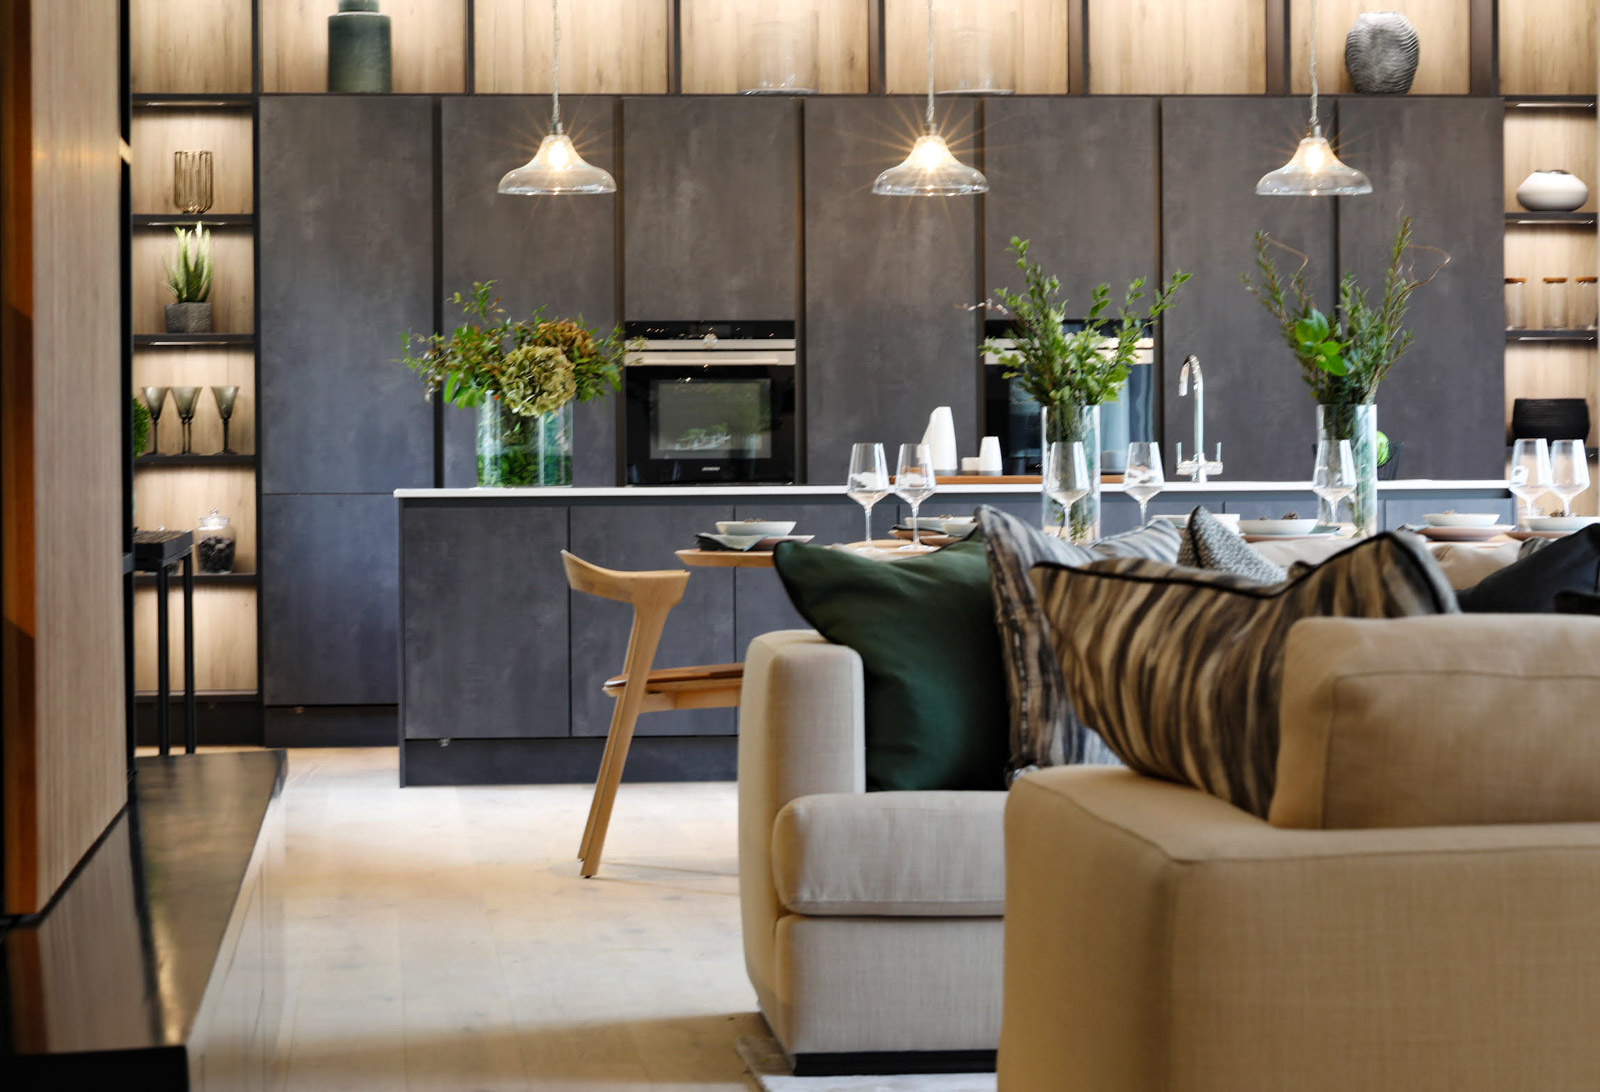 Kitchen Island Lighting: How to Choose the Right Lights for Your Kitchen Island